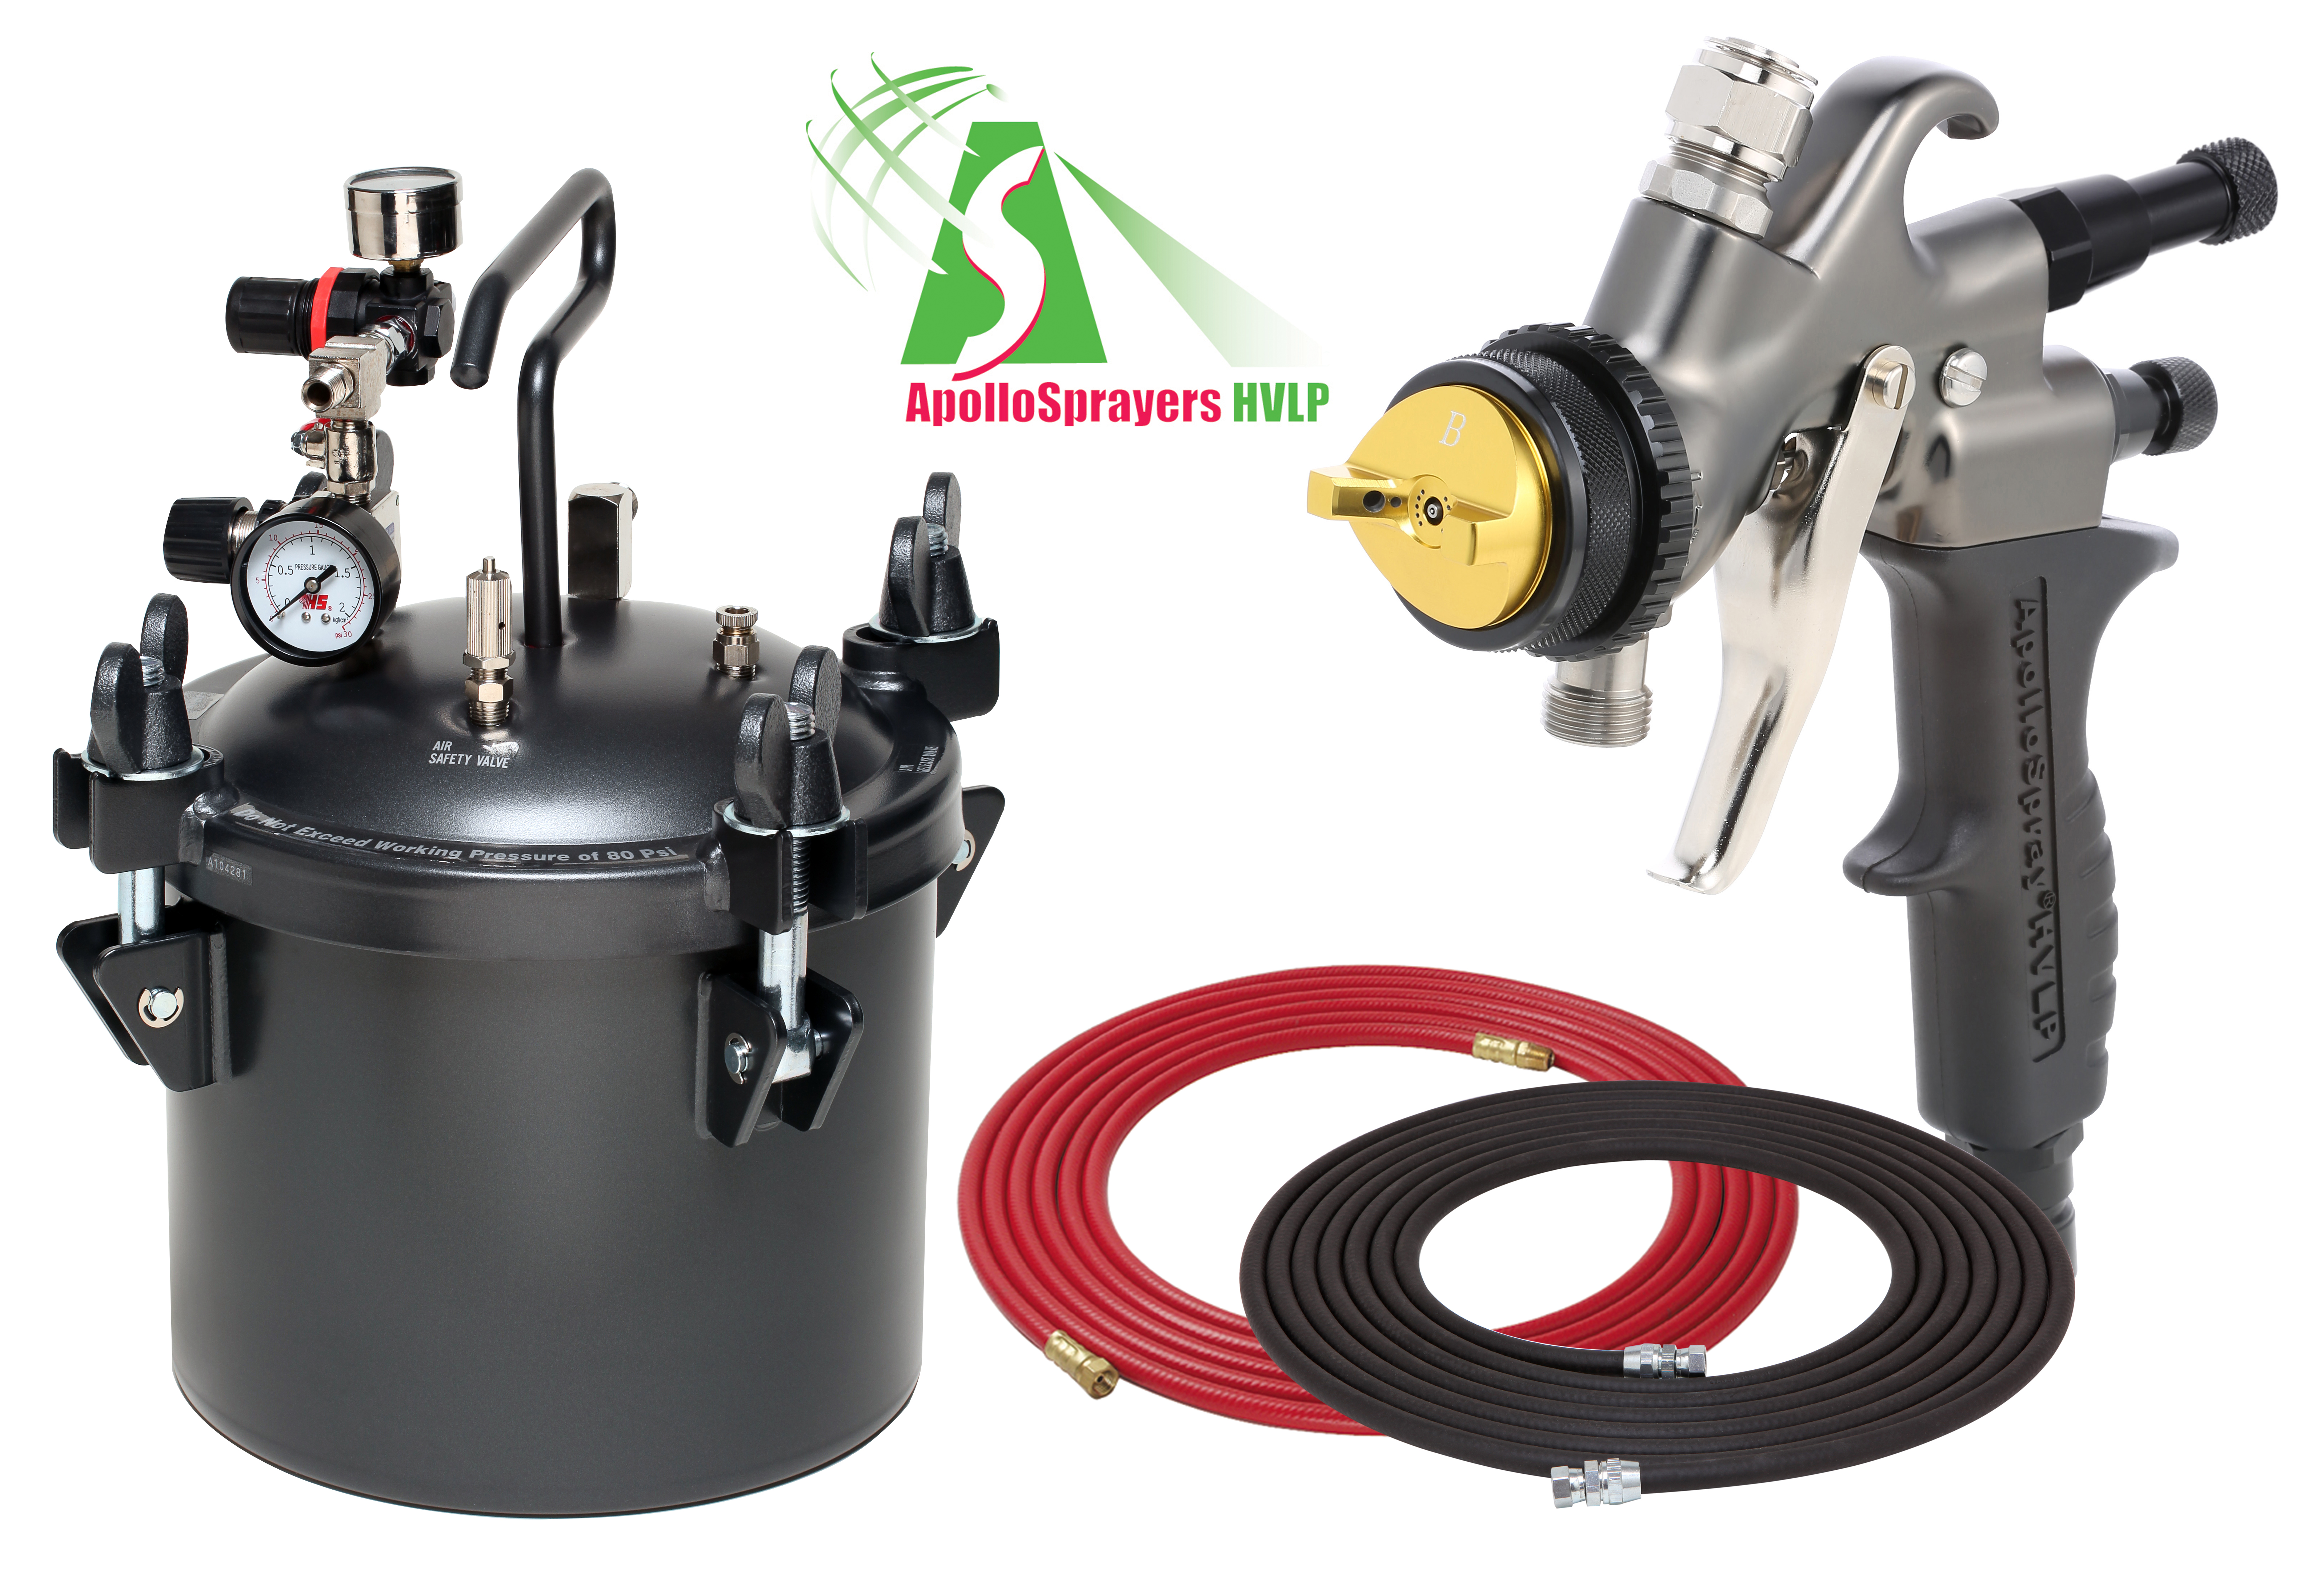 2.5 Gallon Combo Package with the 7700C Spray Gun